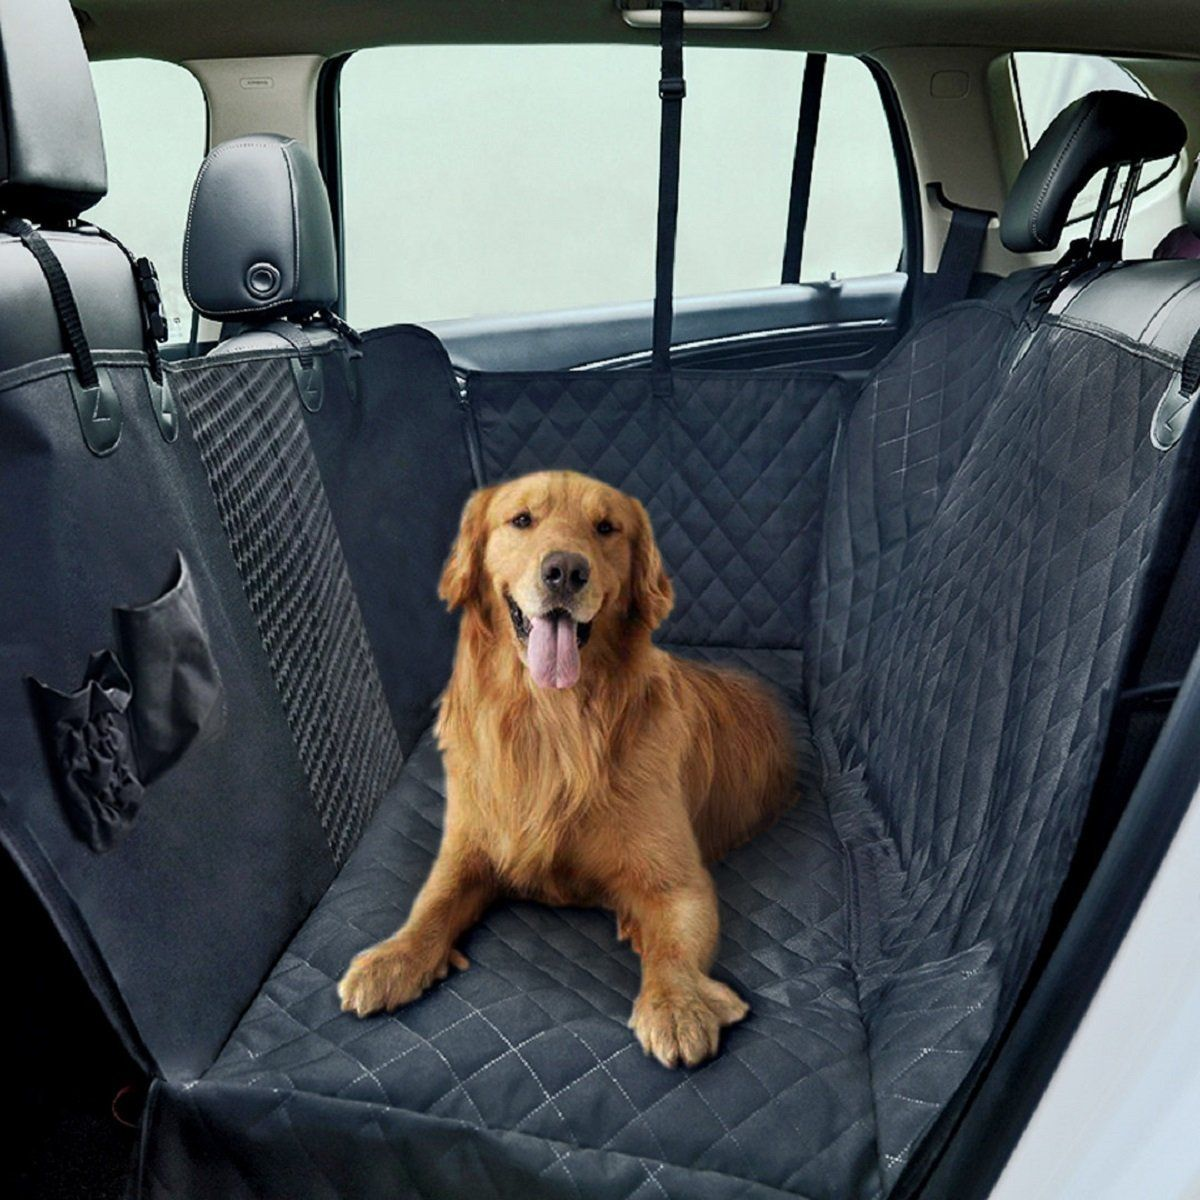 SUV Waterproof Dog Hammock Trucks Best Dog Seat Cover for Backseat of Cars